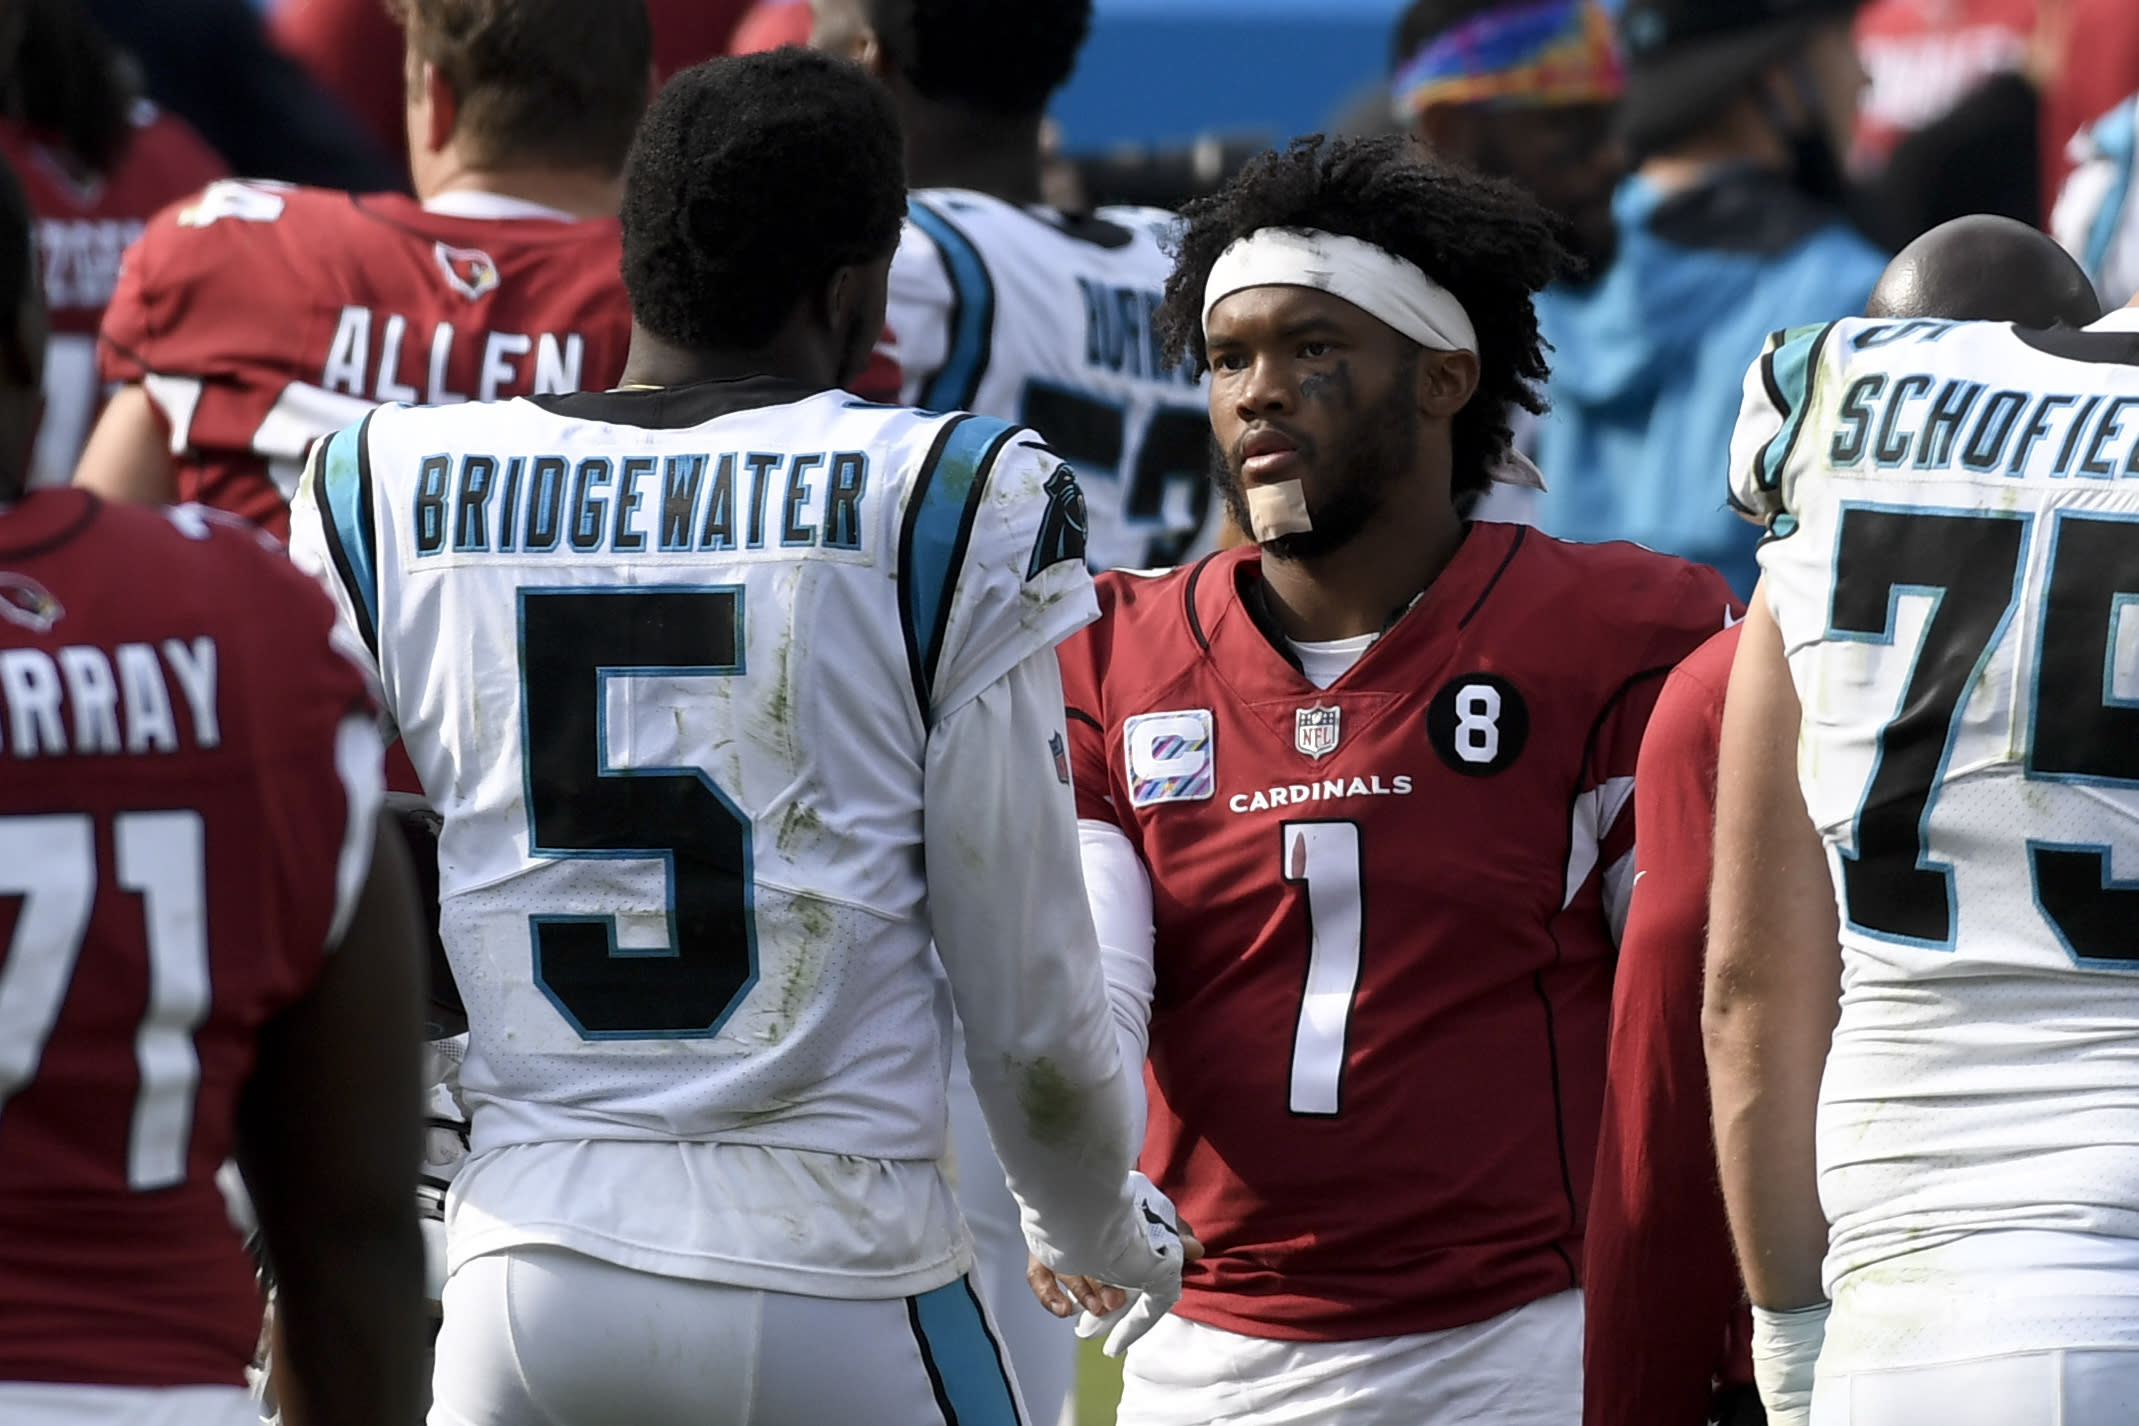 Carolina Panthers quarterback Teddy Bridgewater, left, and Arizona Cardinals quarterback Kyler Murray meet on the field after an NFL football game Sunday, Oct. 4, 2020, in Charlotte, N.C. (AP Photo/Mike McCarn)